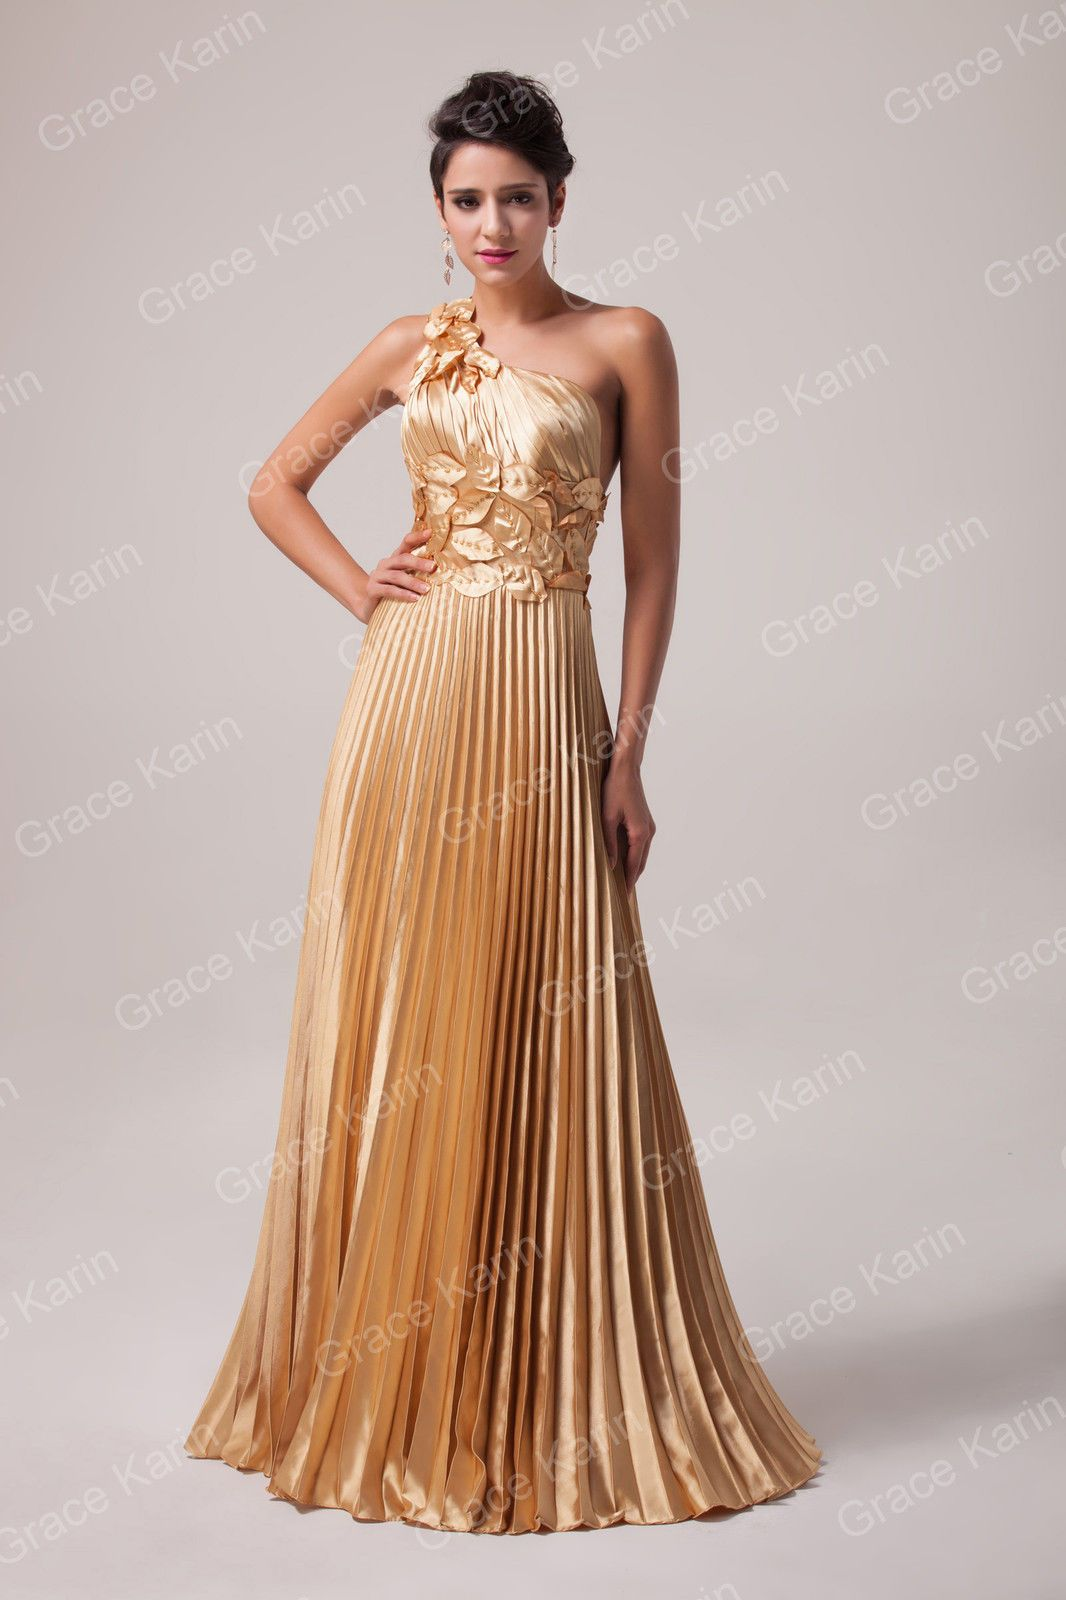 Bridesmaid prom ball long dress for cocktail evening party wedding